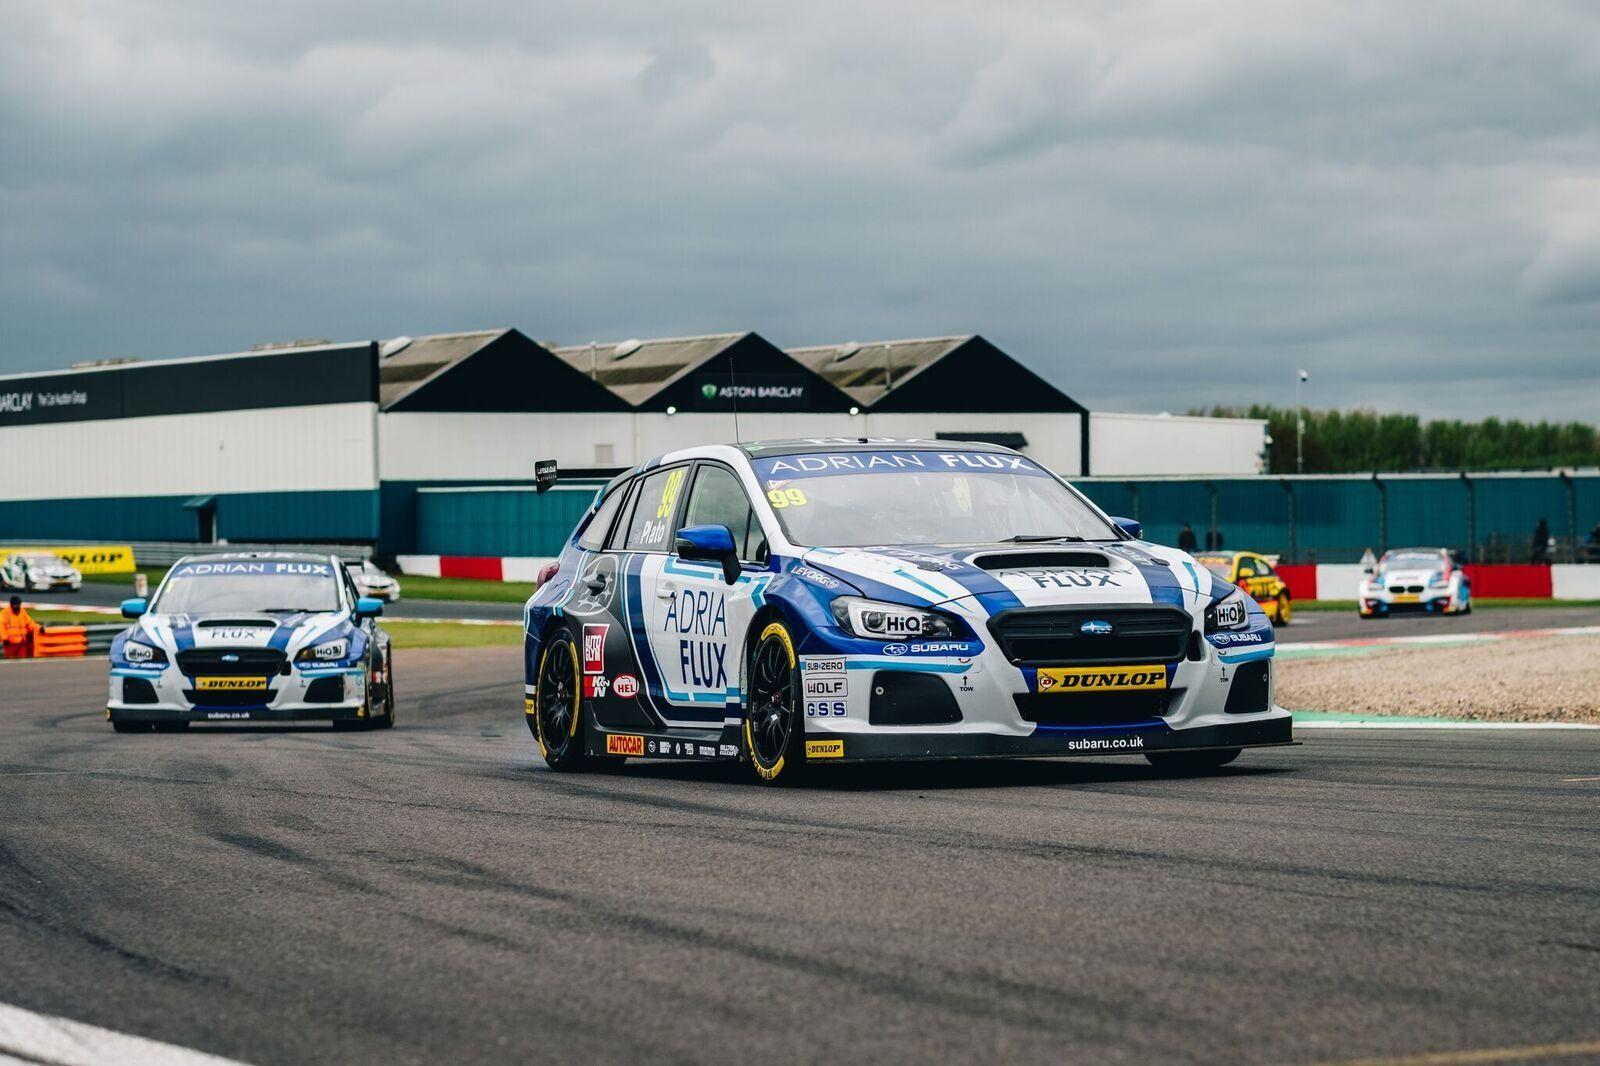 A TRICKY WEEKEND OF RACING AT THRUXTON